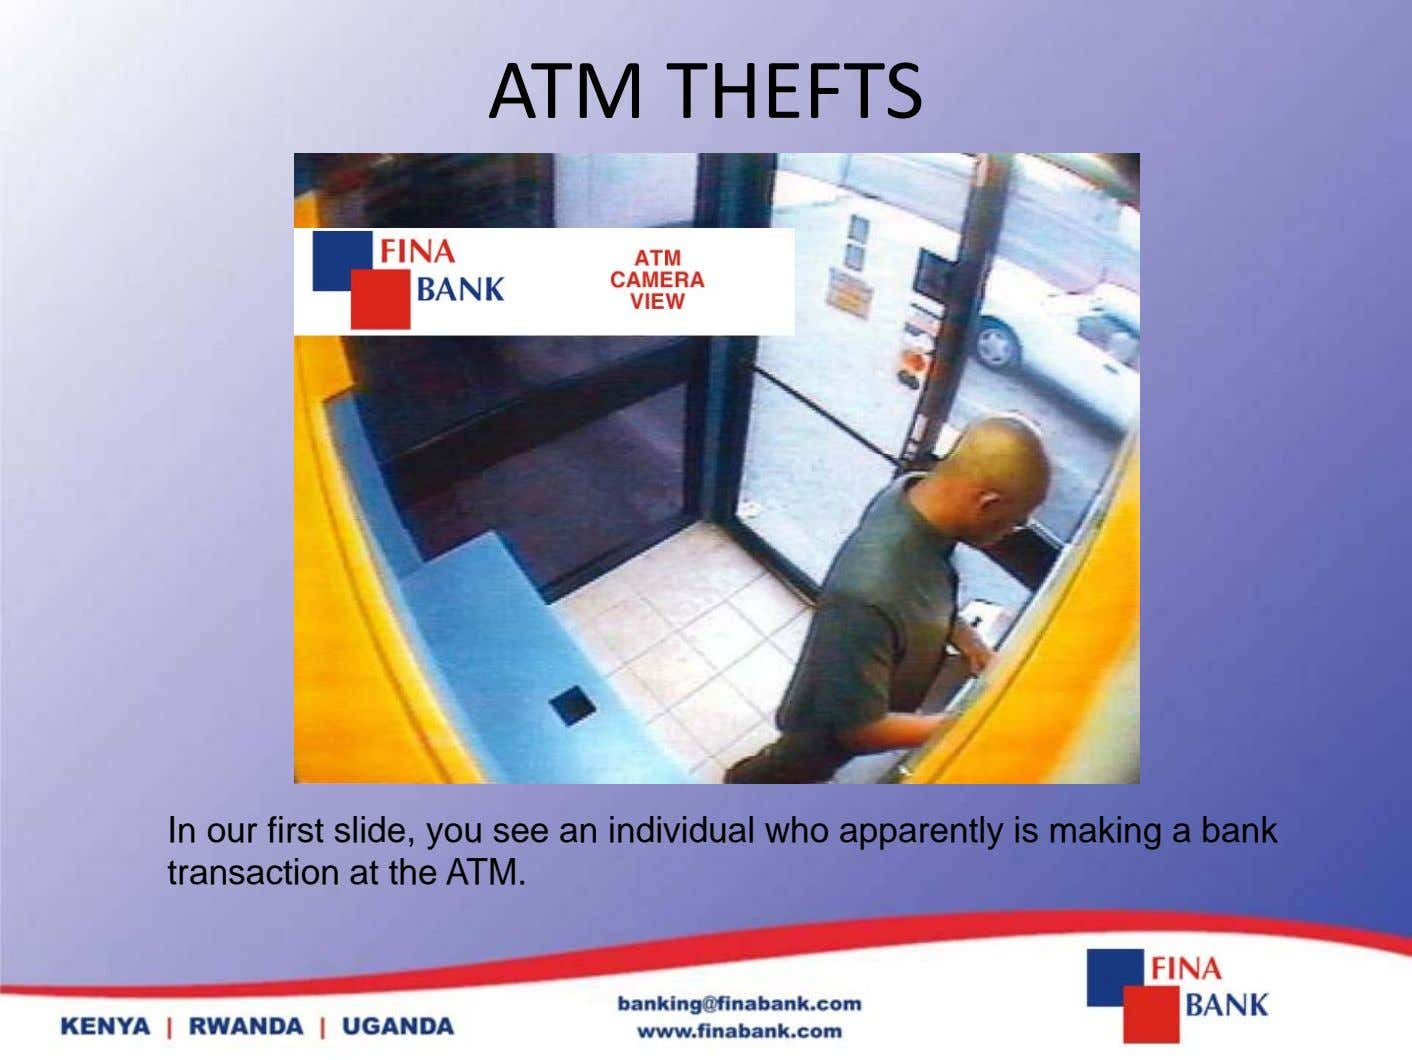 ATM THEFTS In our first slide, you see an individual who apparently is making a